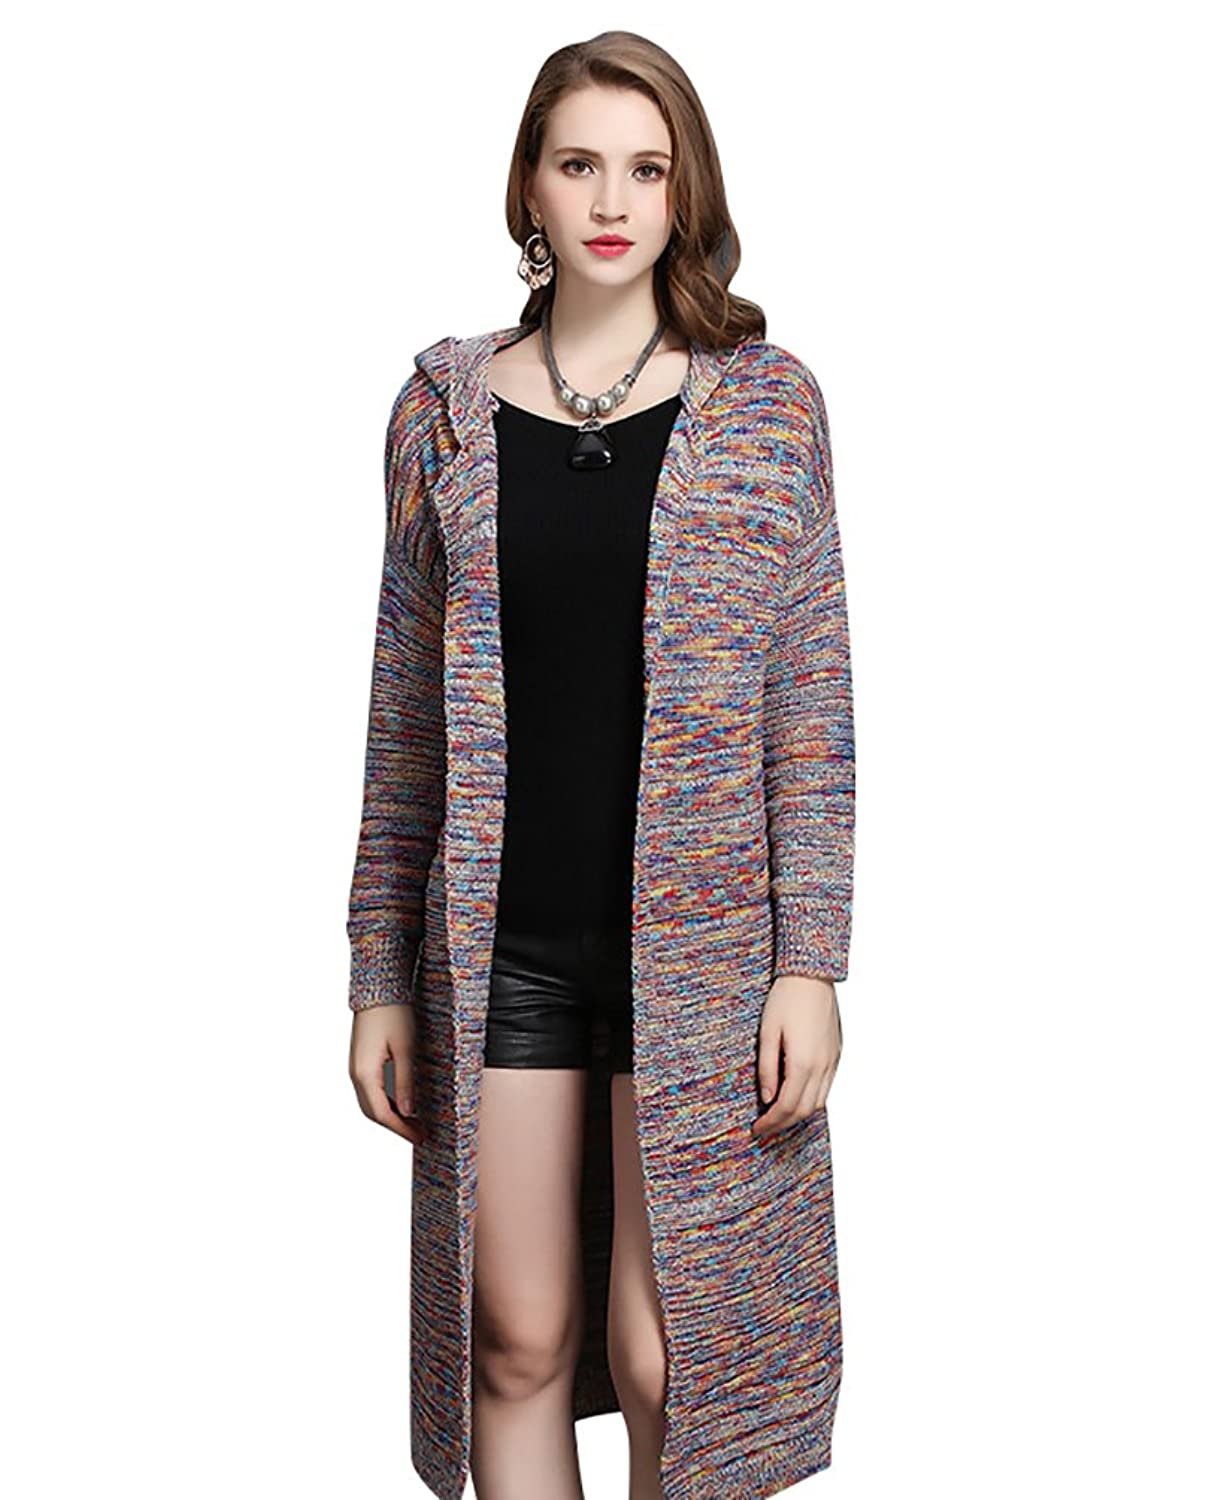 CHENGYANG Womens Winter Cardigan Open Front Long Jumper with Hooded Warm Sweater